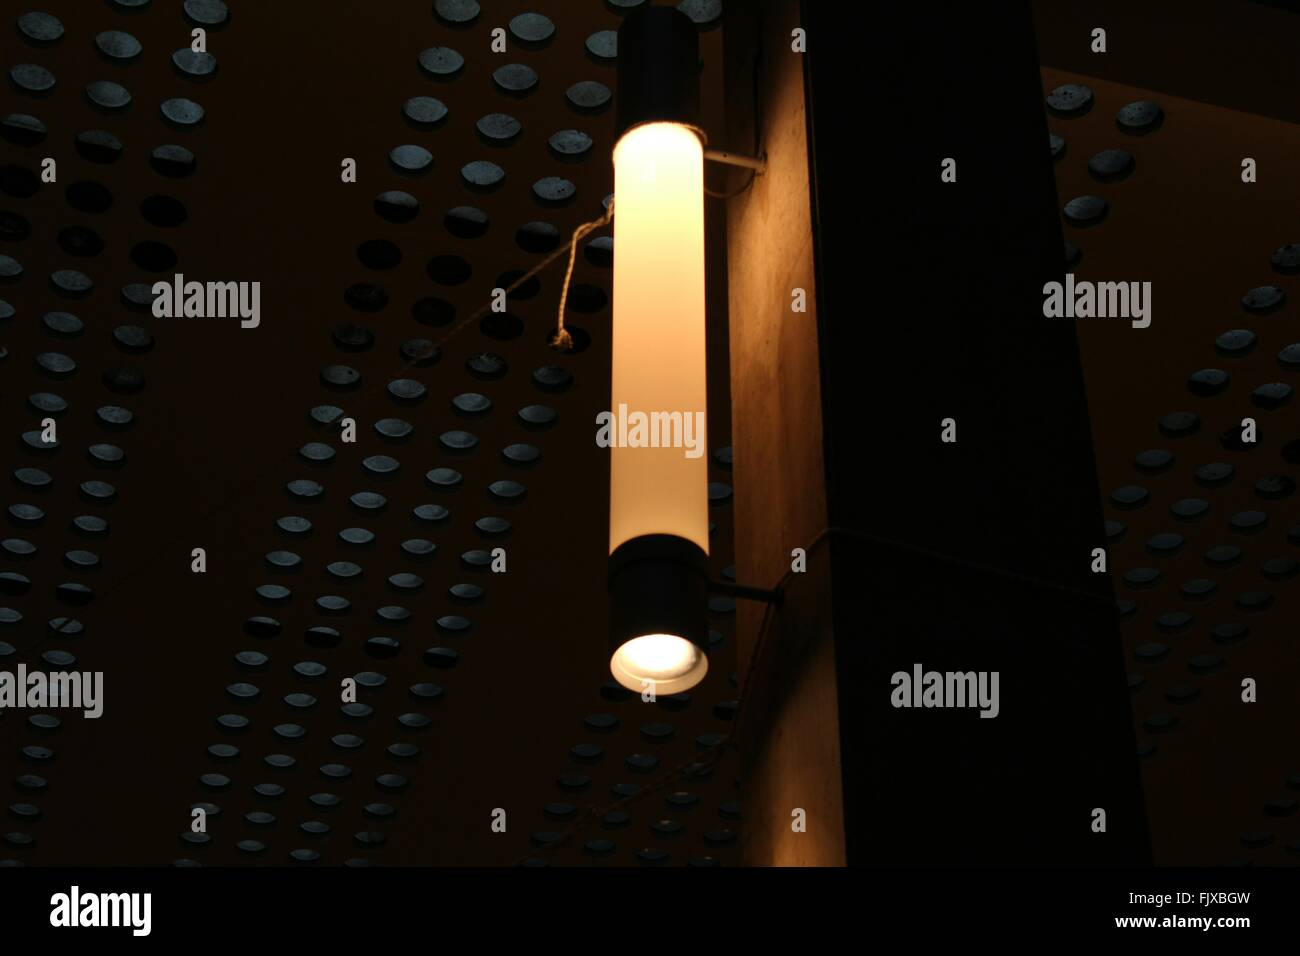 Low Angle View Of Illuminated Light Fixture - Stock Image